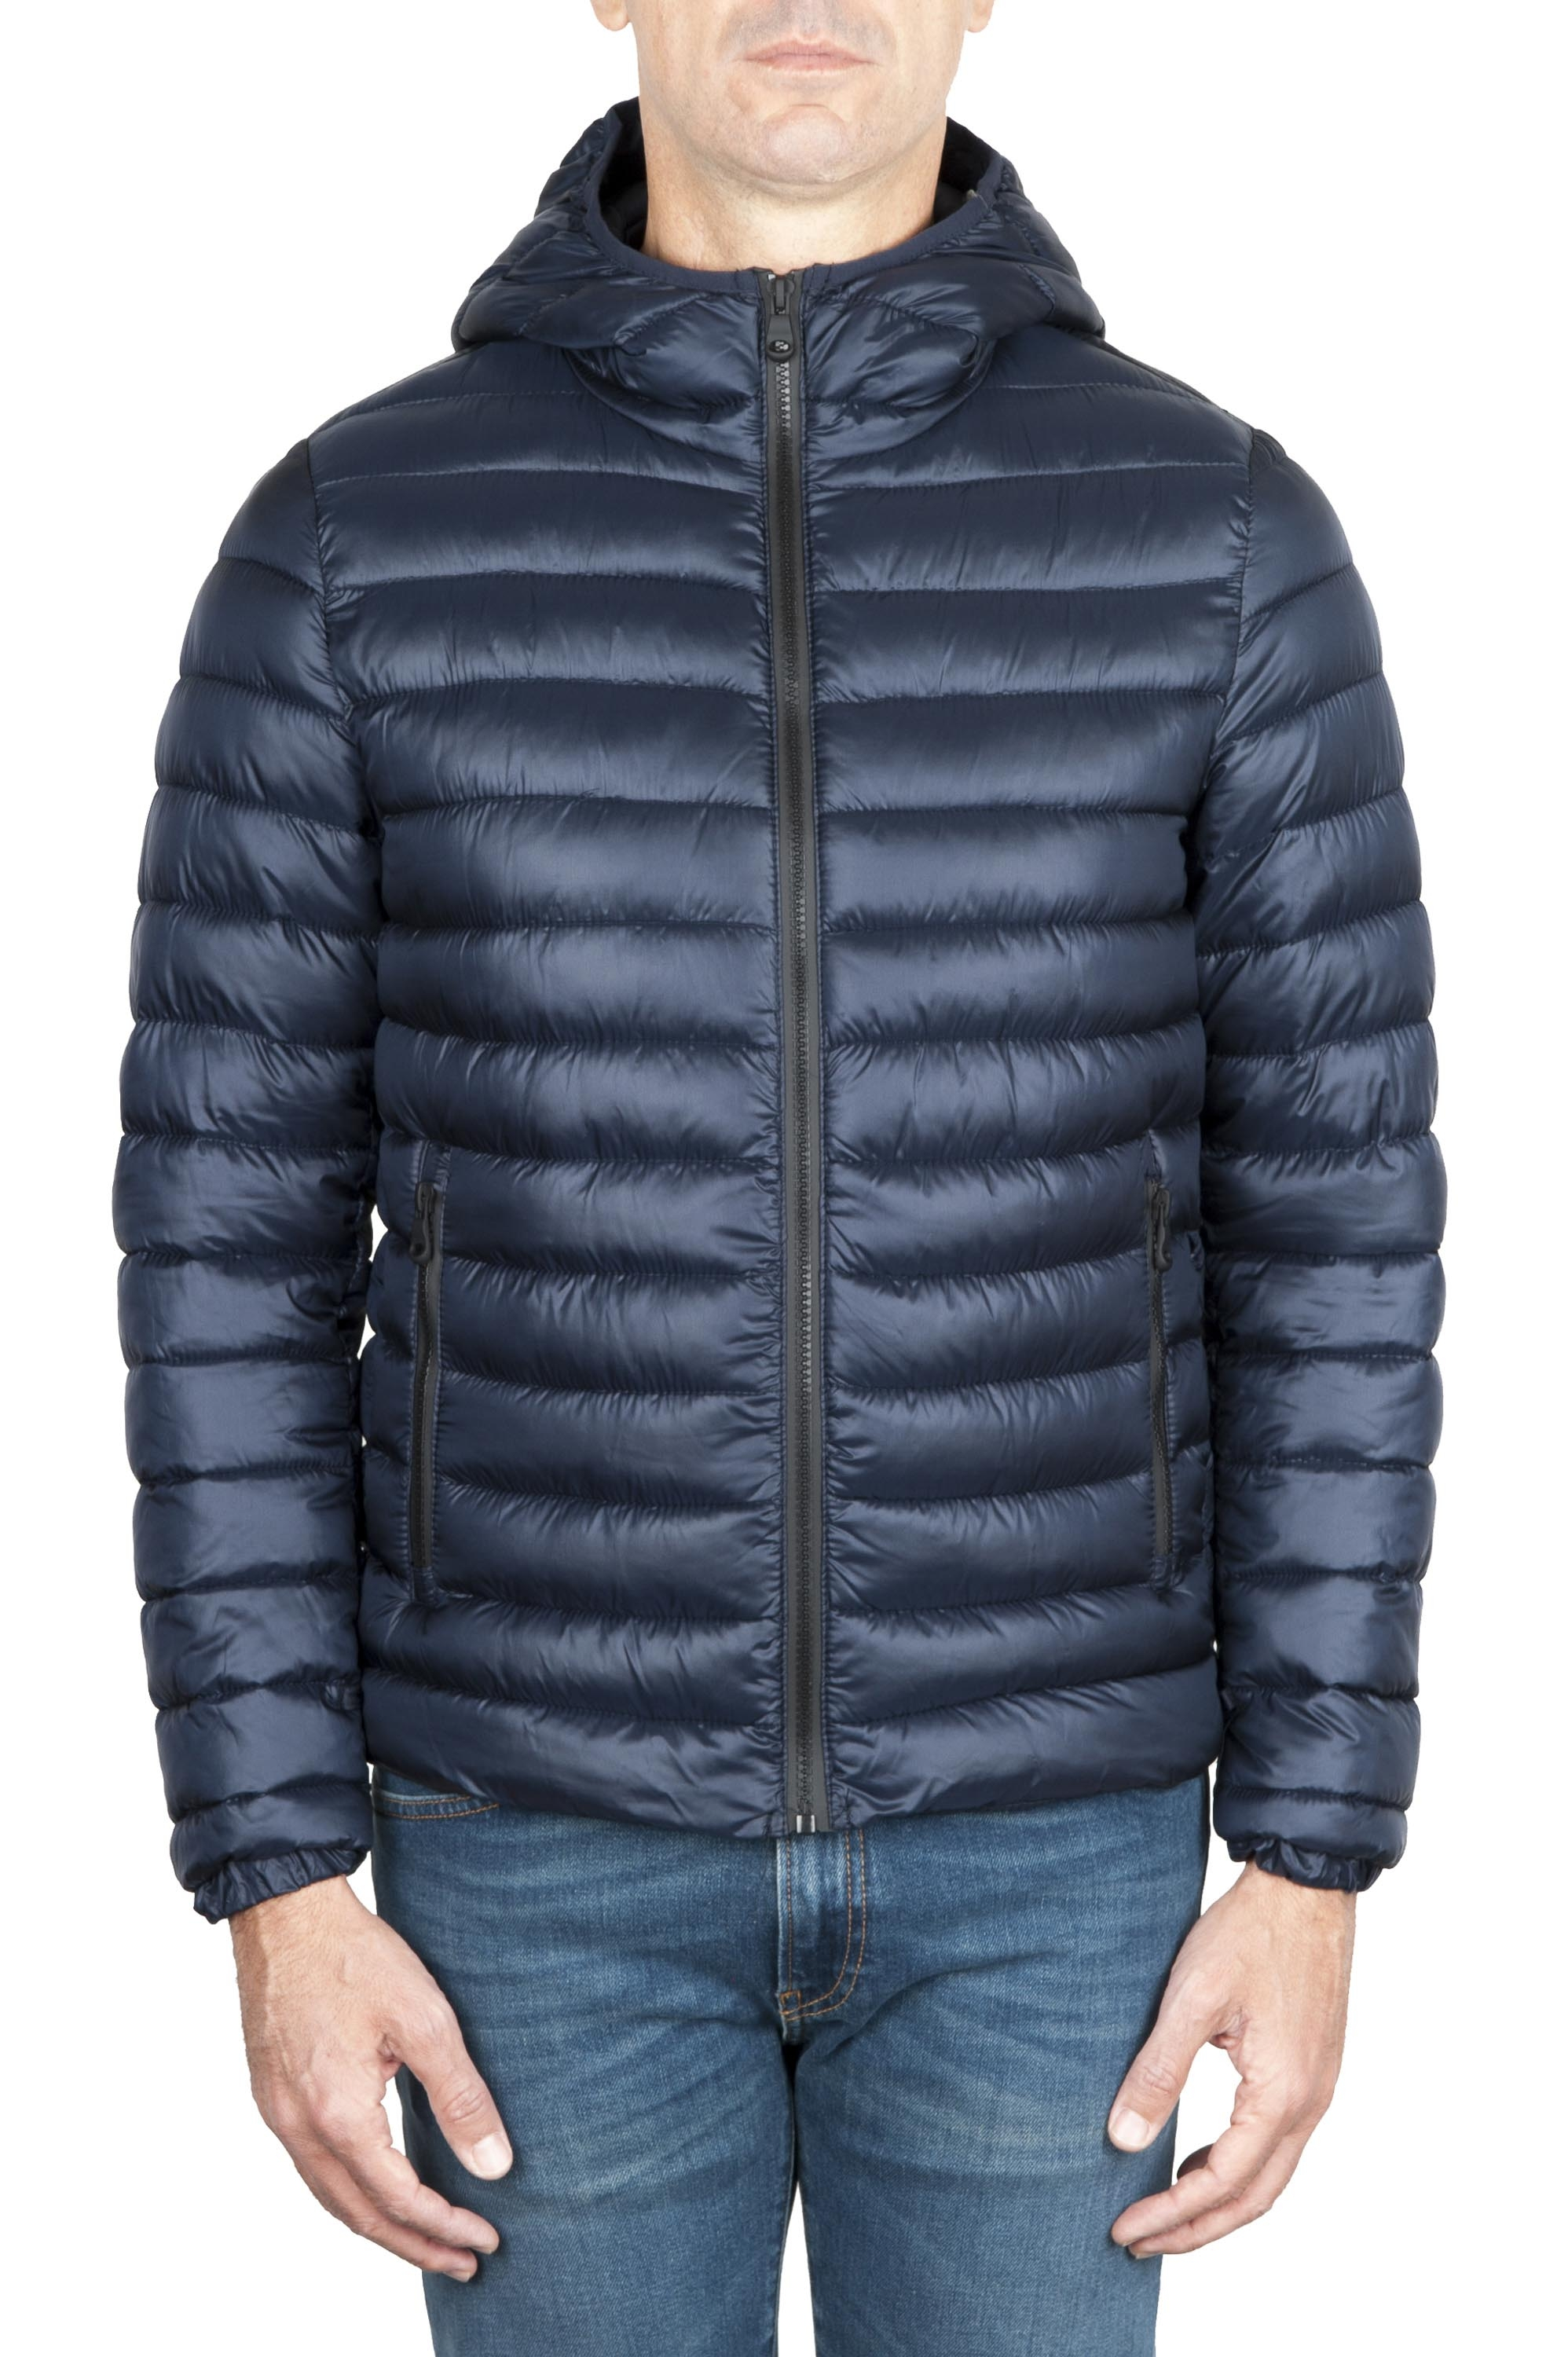 SBU 02948_2020AW Thermic insulated hooded down jacket blue 01